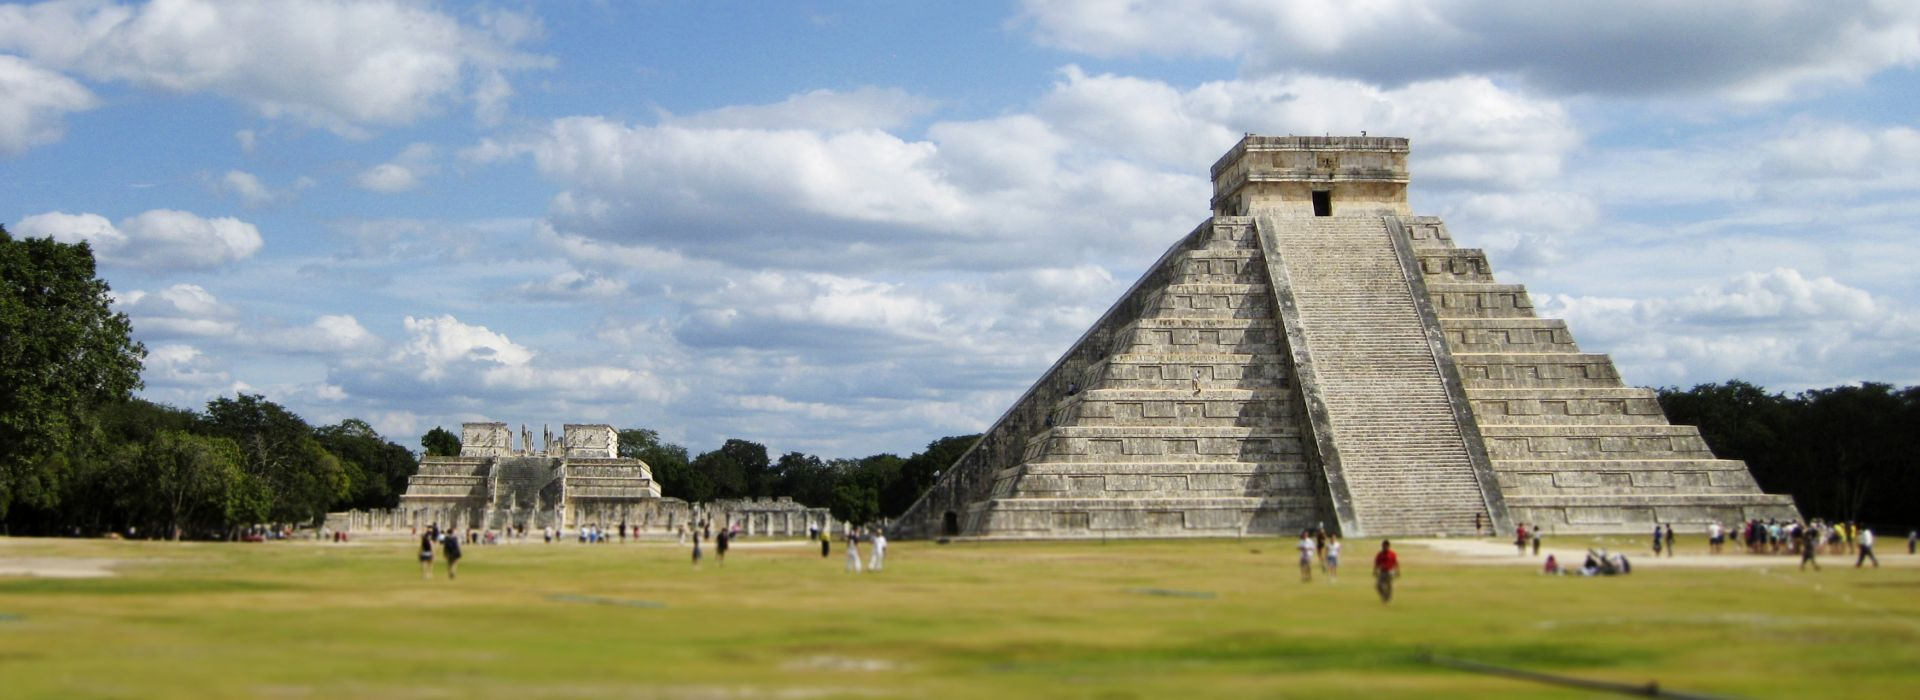 Cultural, religious and historic sites Tours in Mexico City